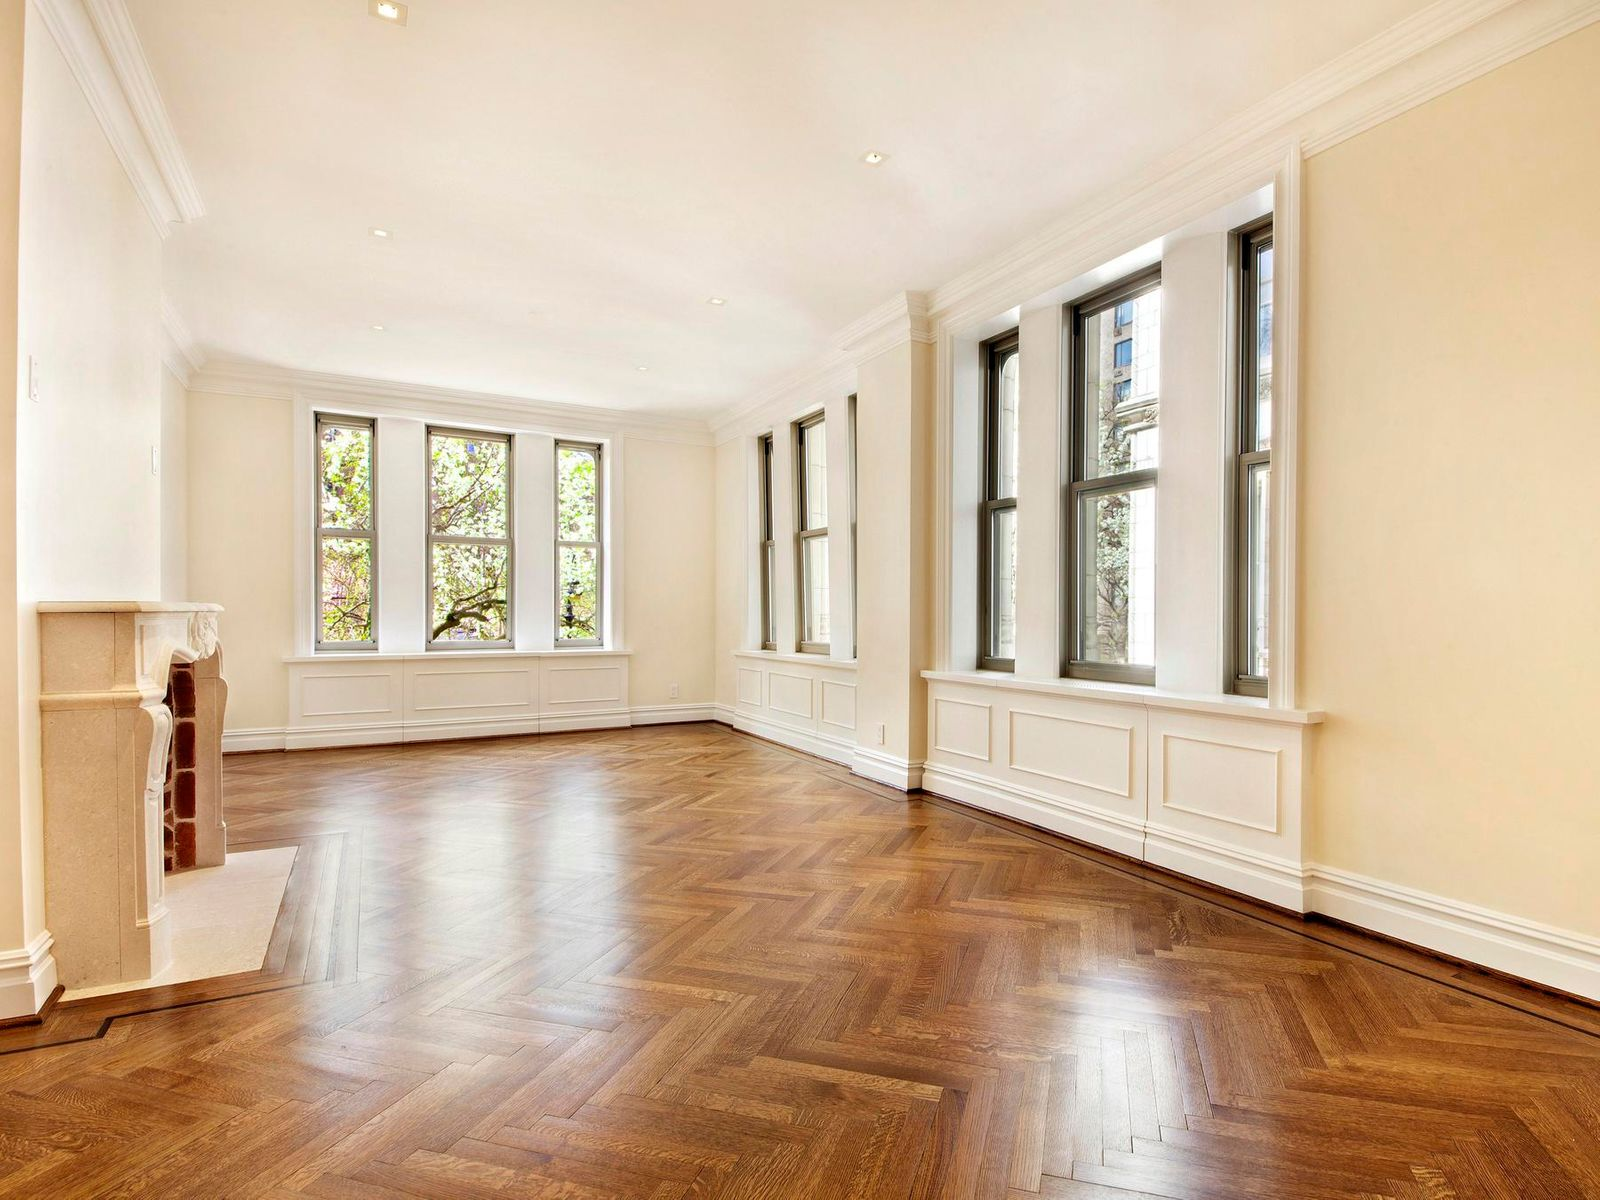 36 Gramercy Park East, New York NY Condominium - New York City Real Estate